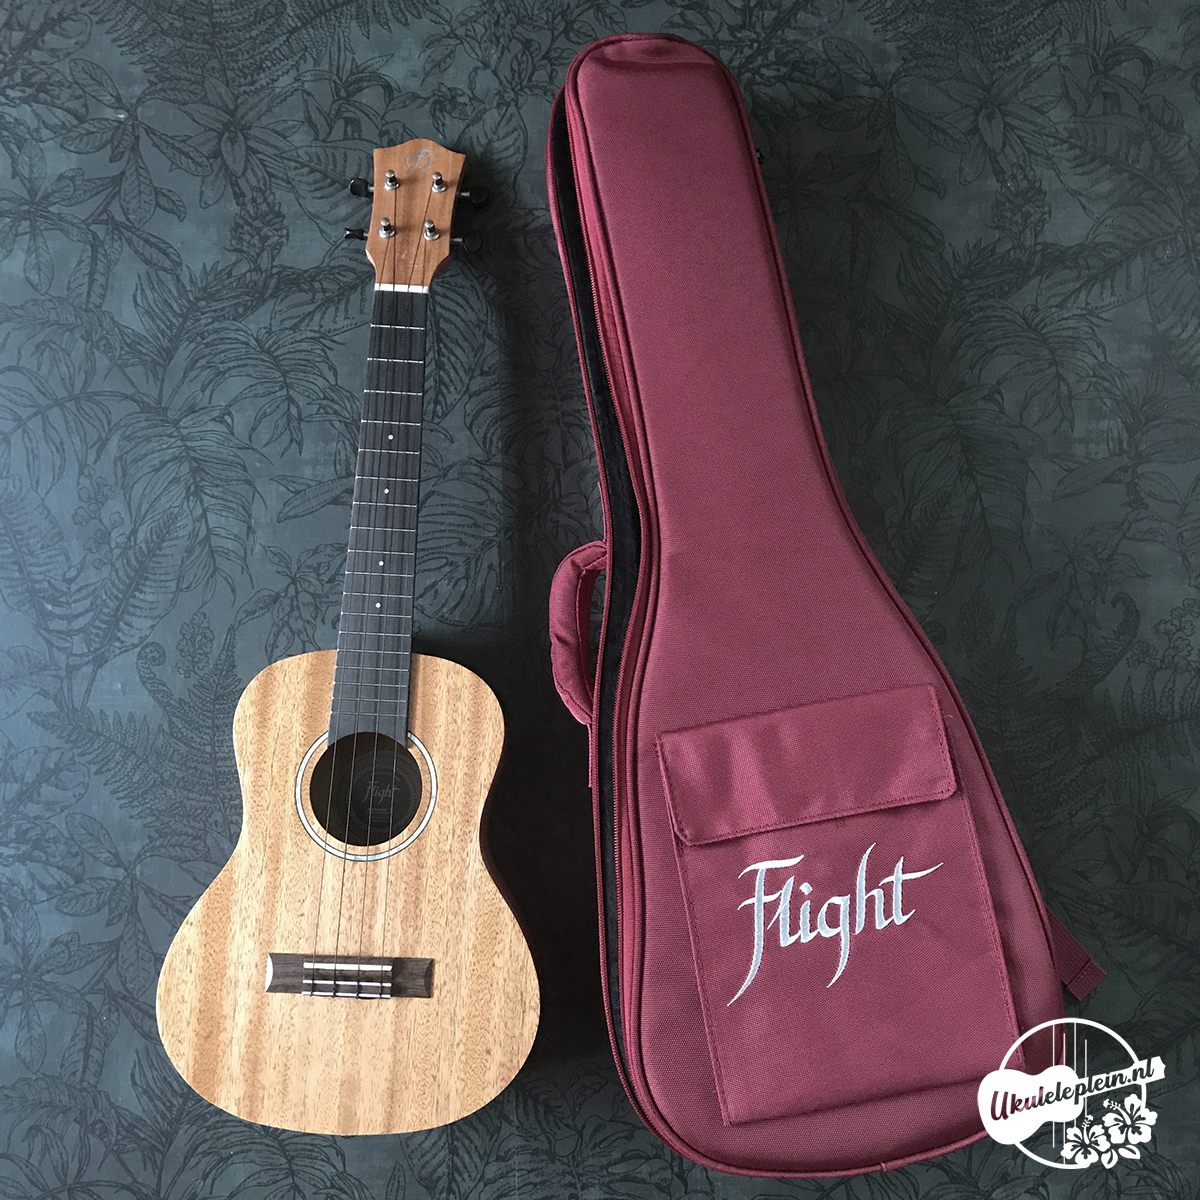 Flight Antonia Tenor